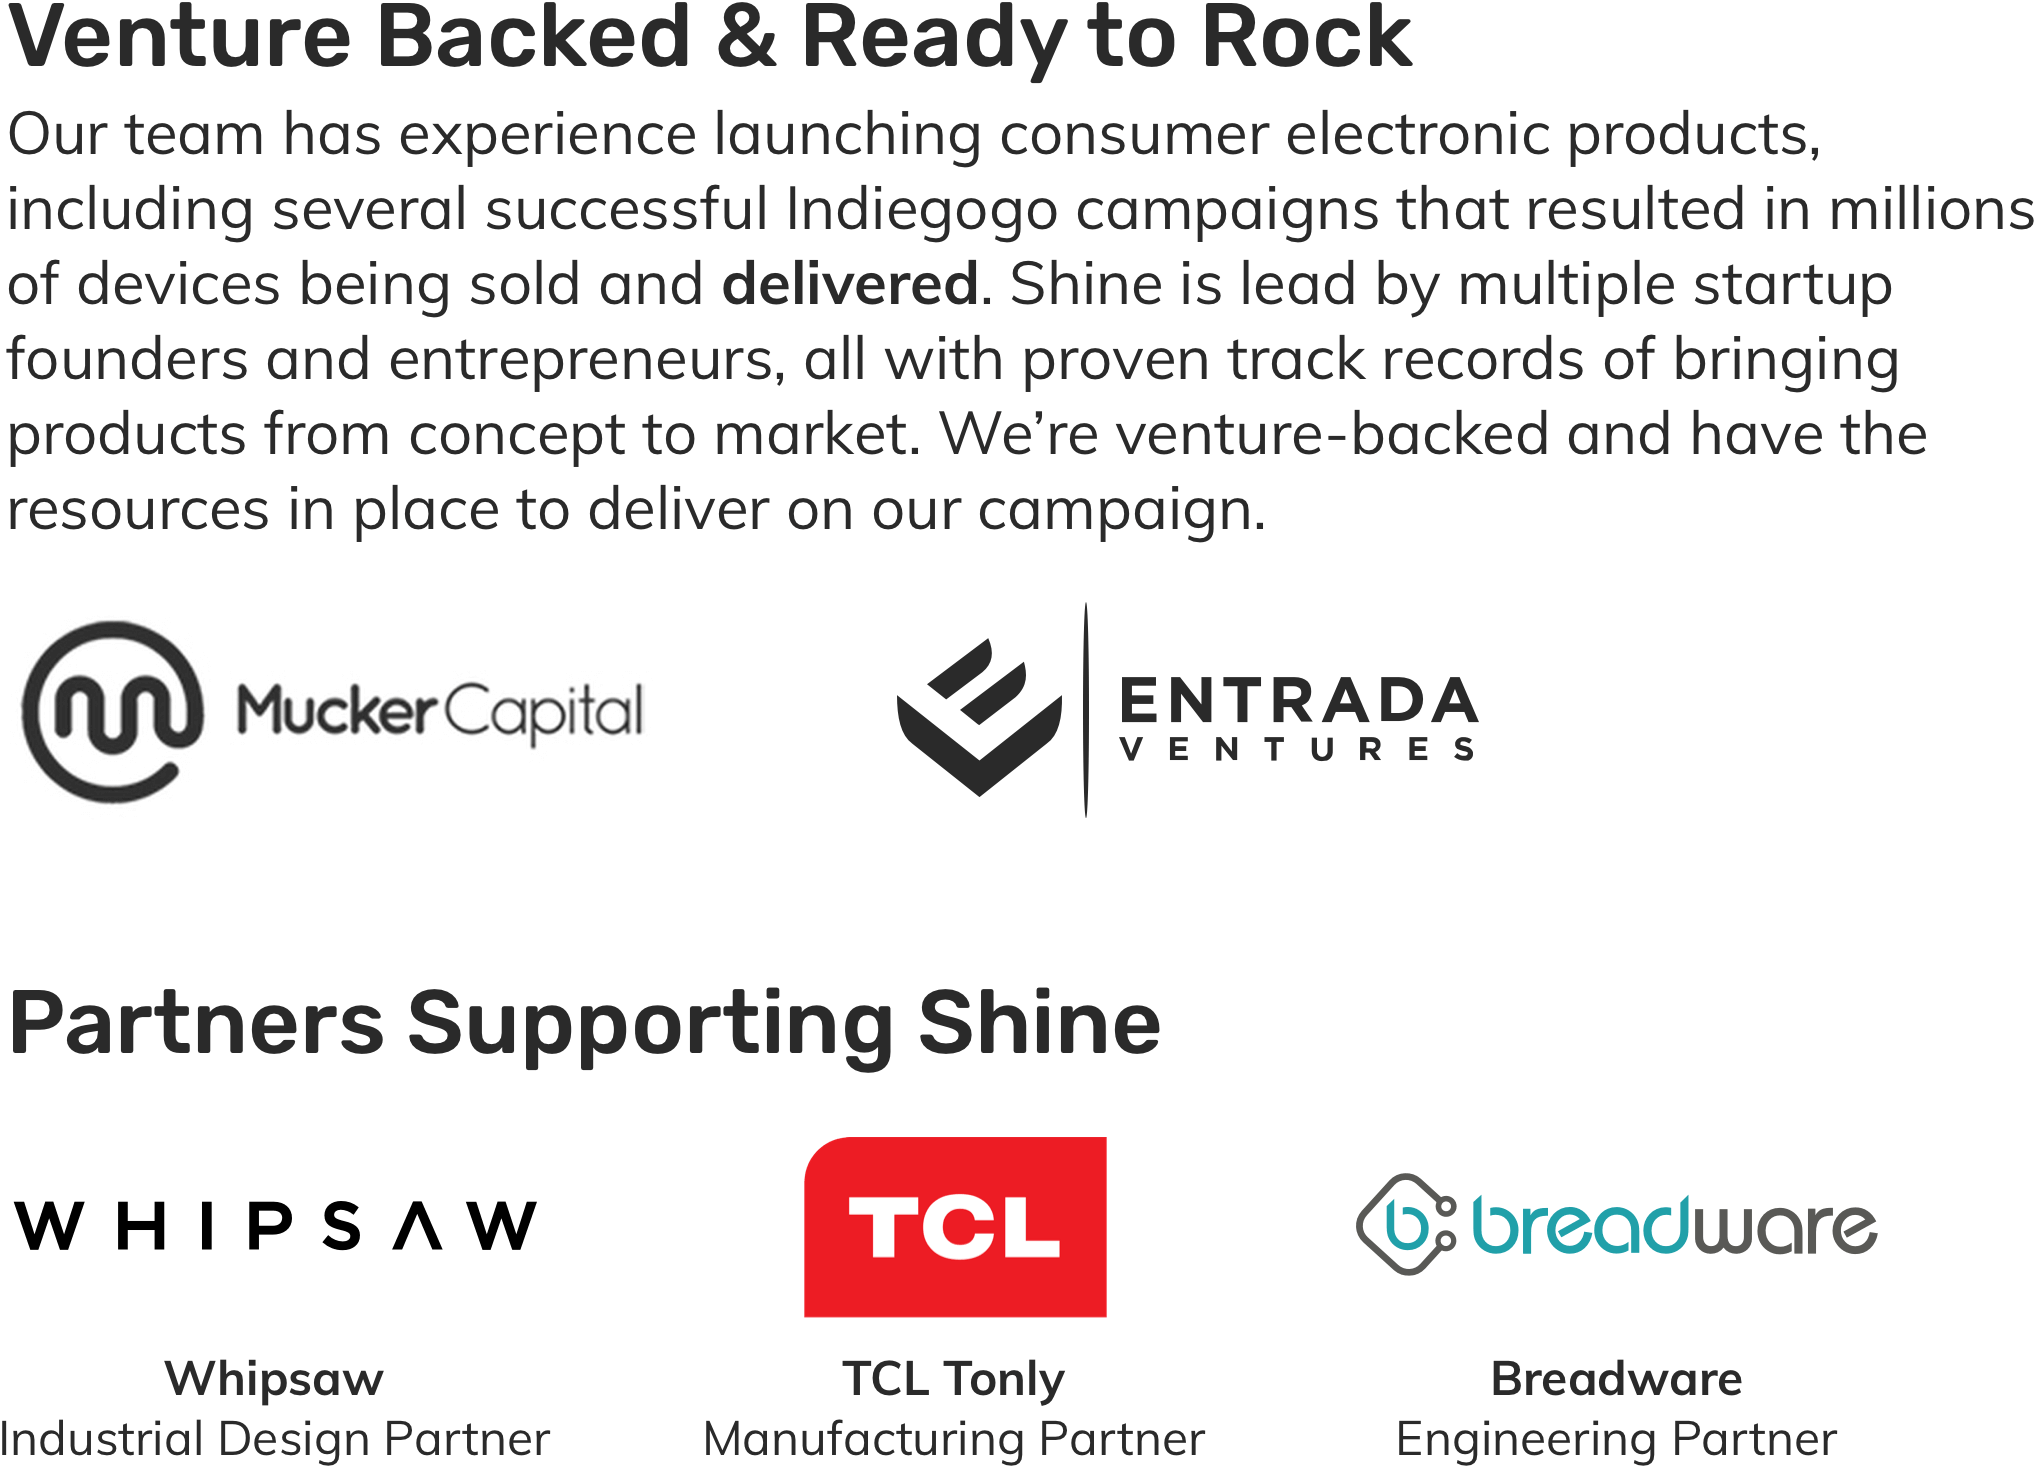 Venture Backed by Mucker Capital and Entrada Ventures.